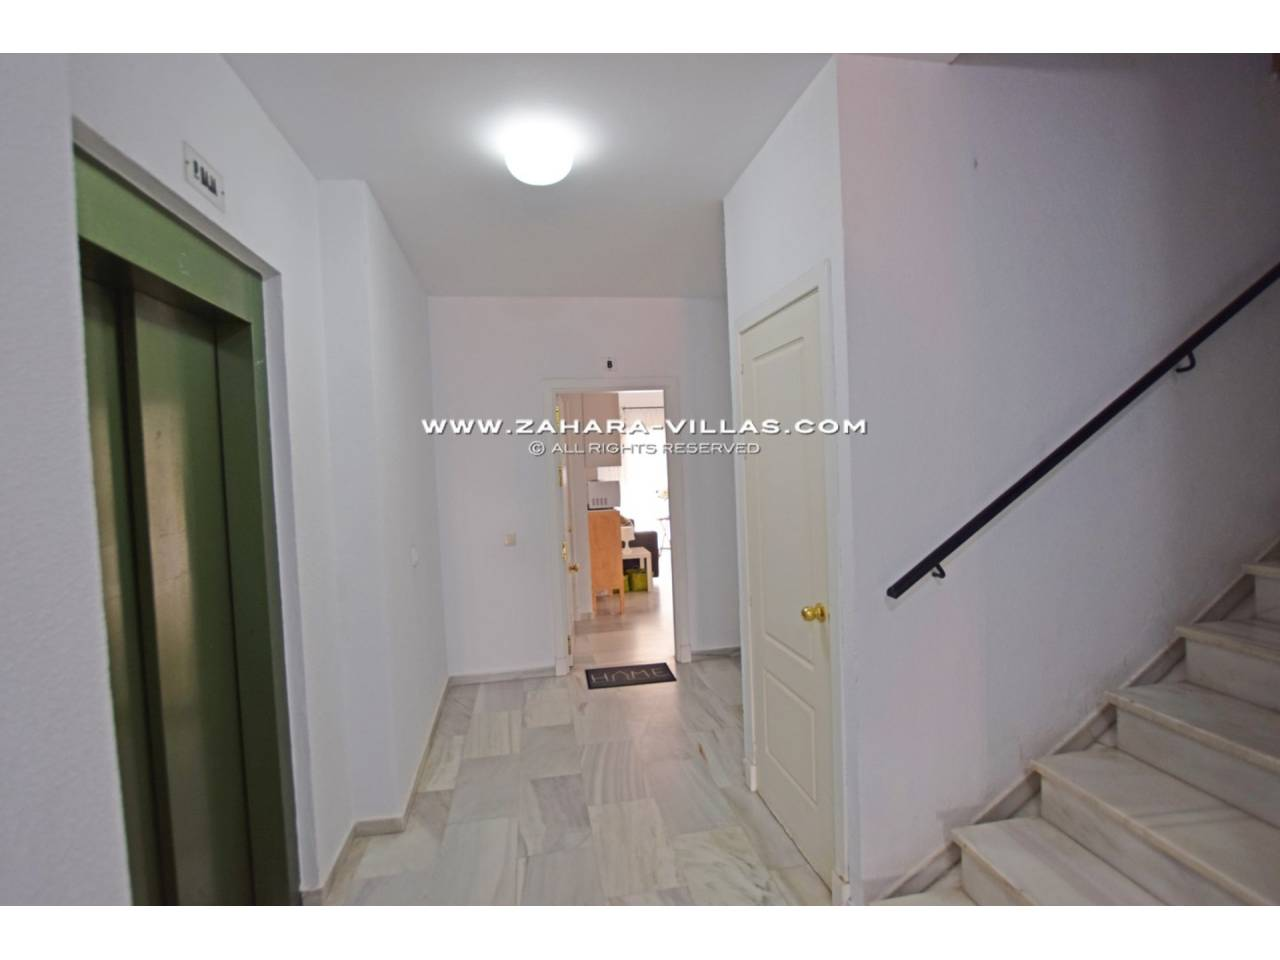 Imagen 17 de Apartment for sale in Zahara de los Atunes